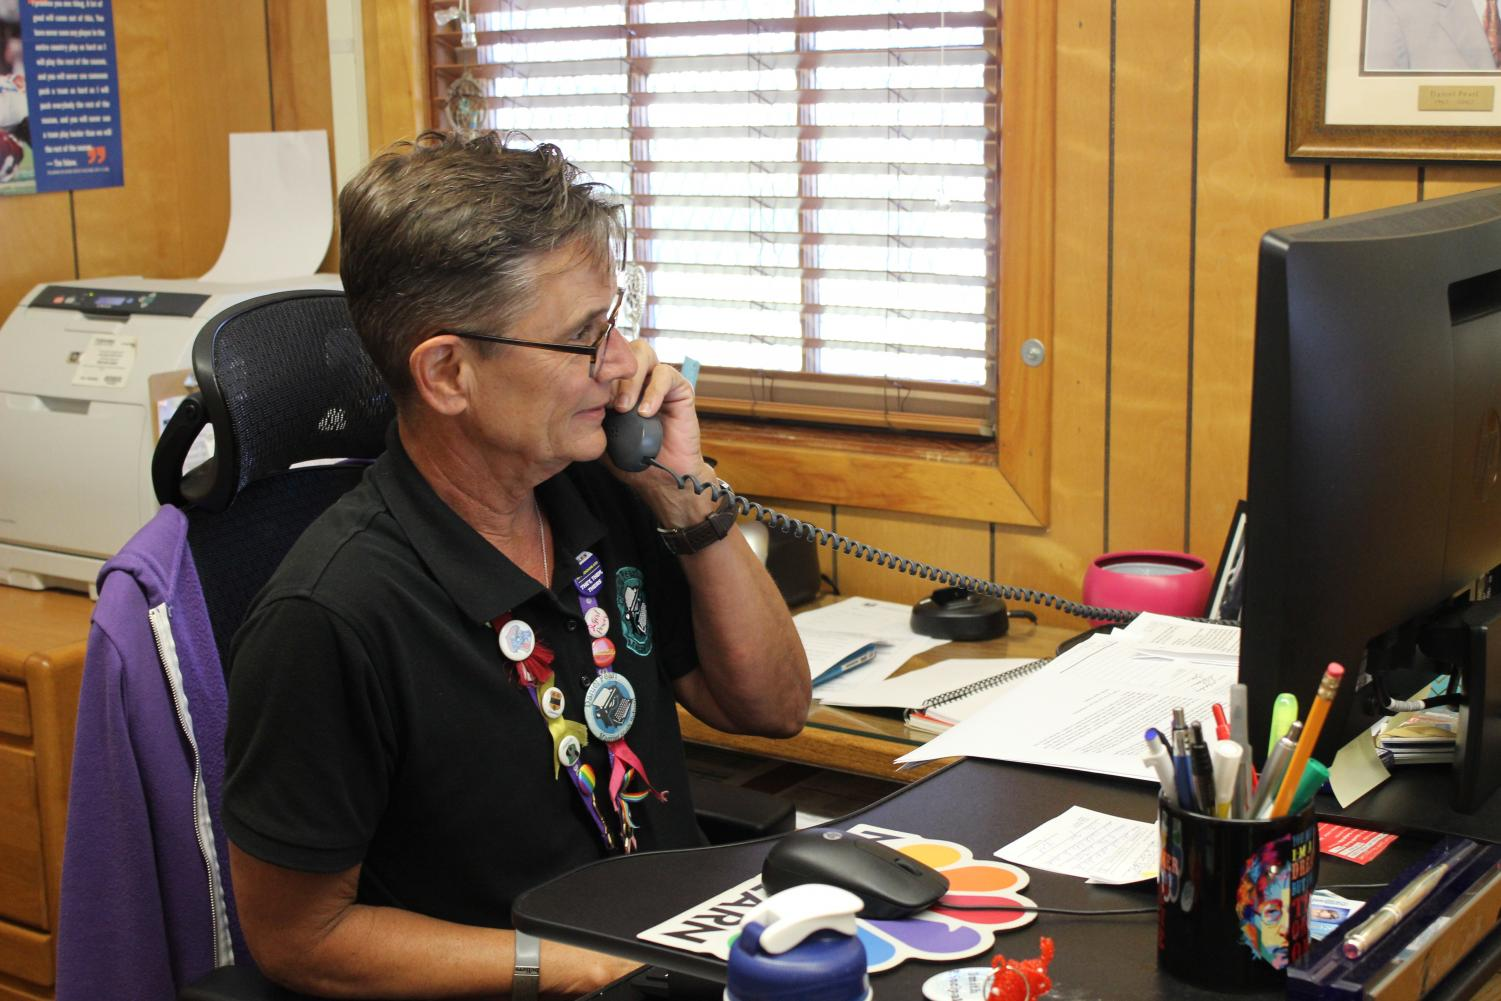 Principal Deb Smith stakes a phone call during school. This year will be Smith's last year as she plans to retire.